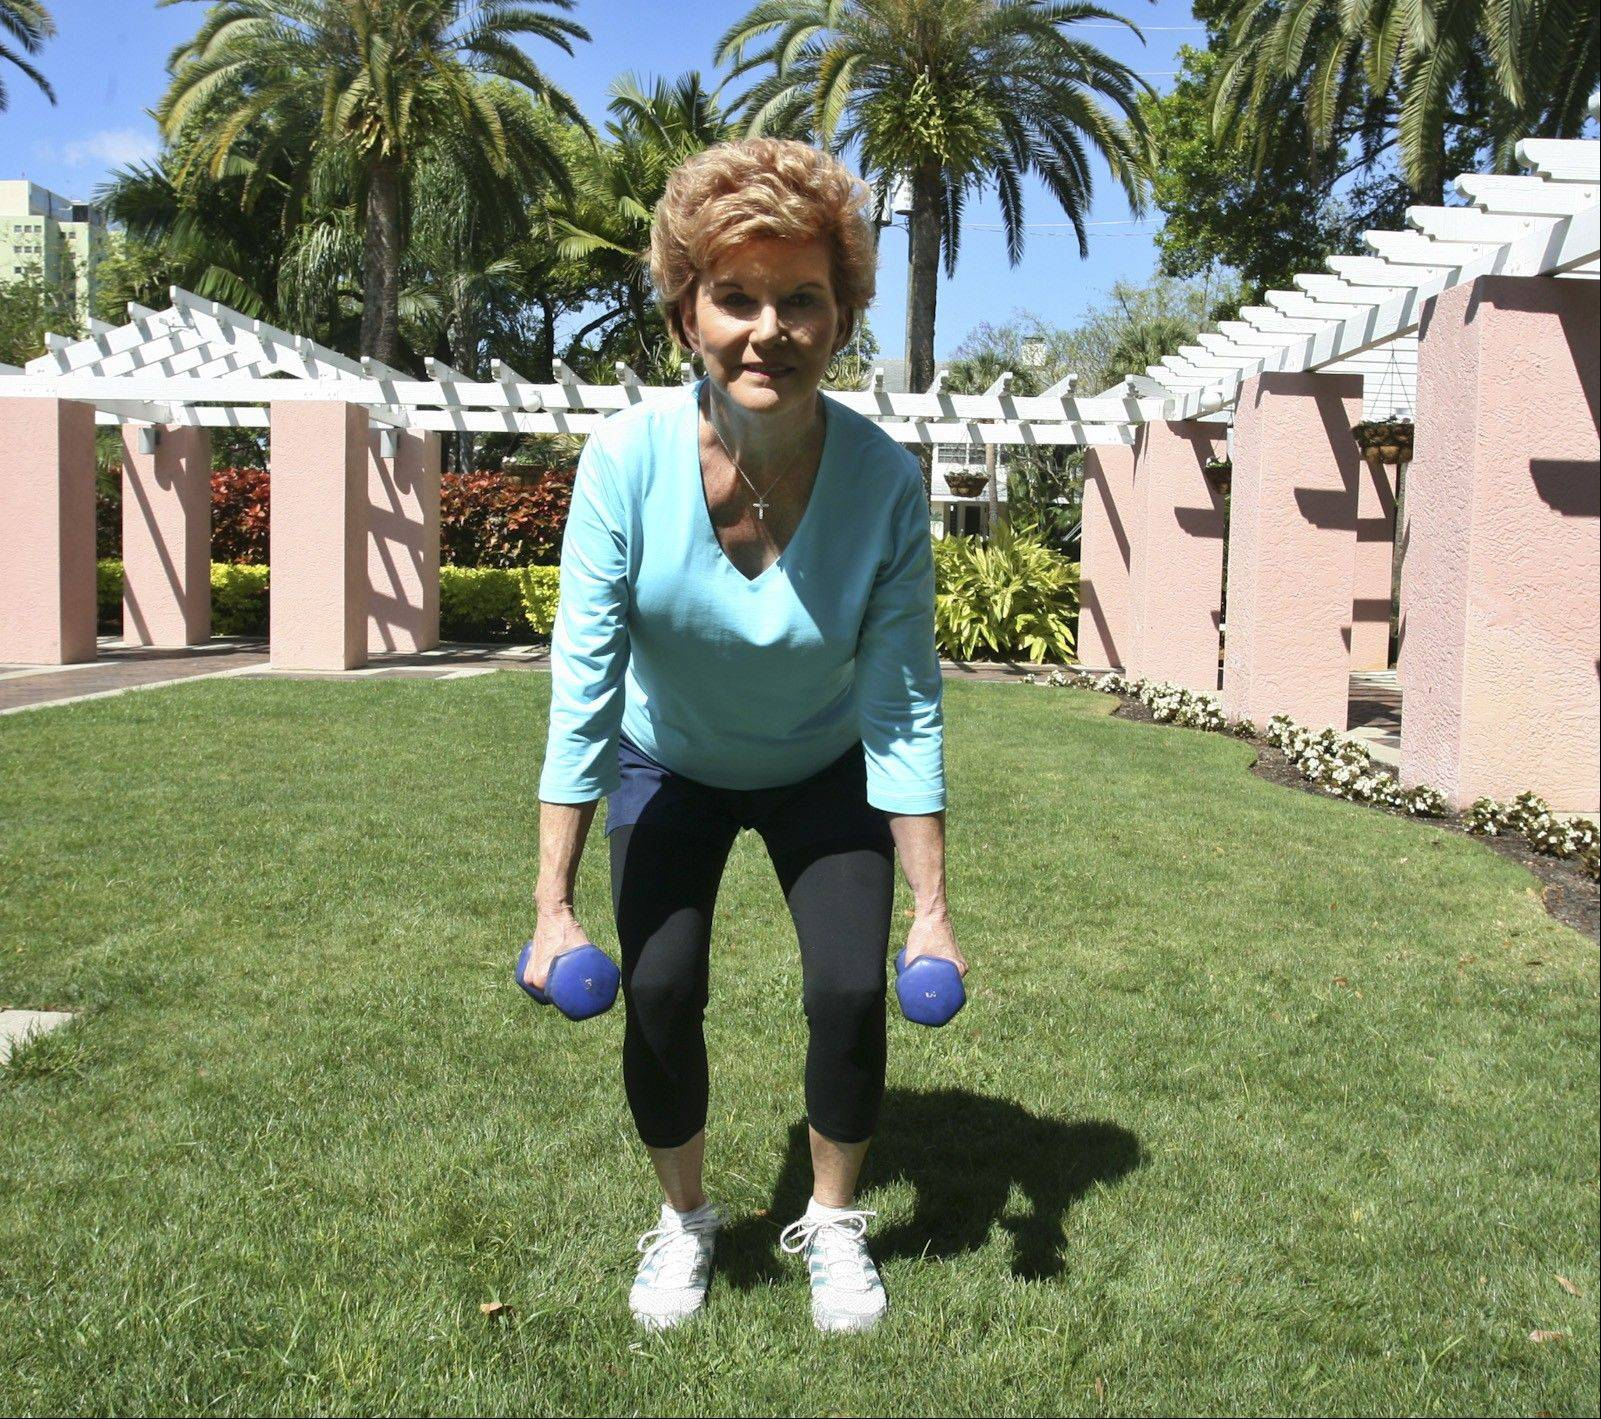 Starin Shouppe demonstrates how to do squats with weights, a lower-body exercise.